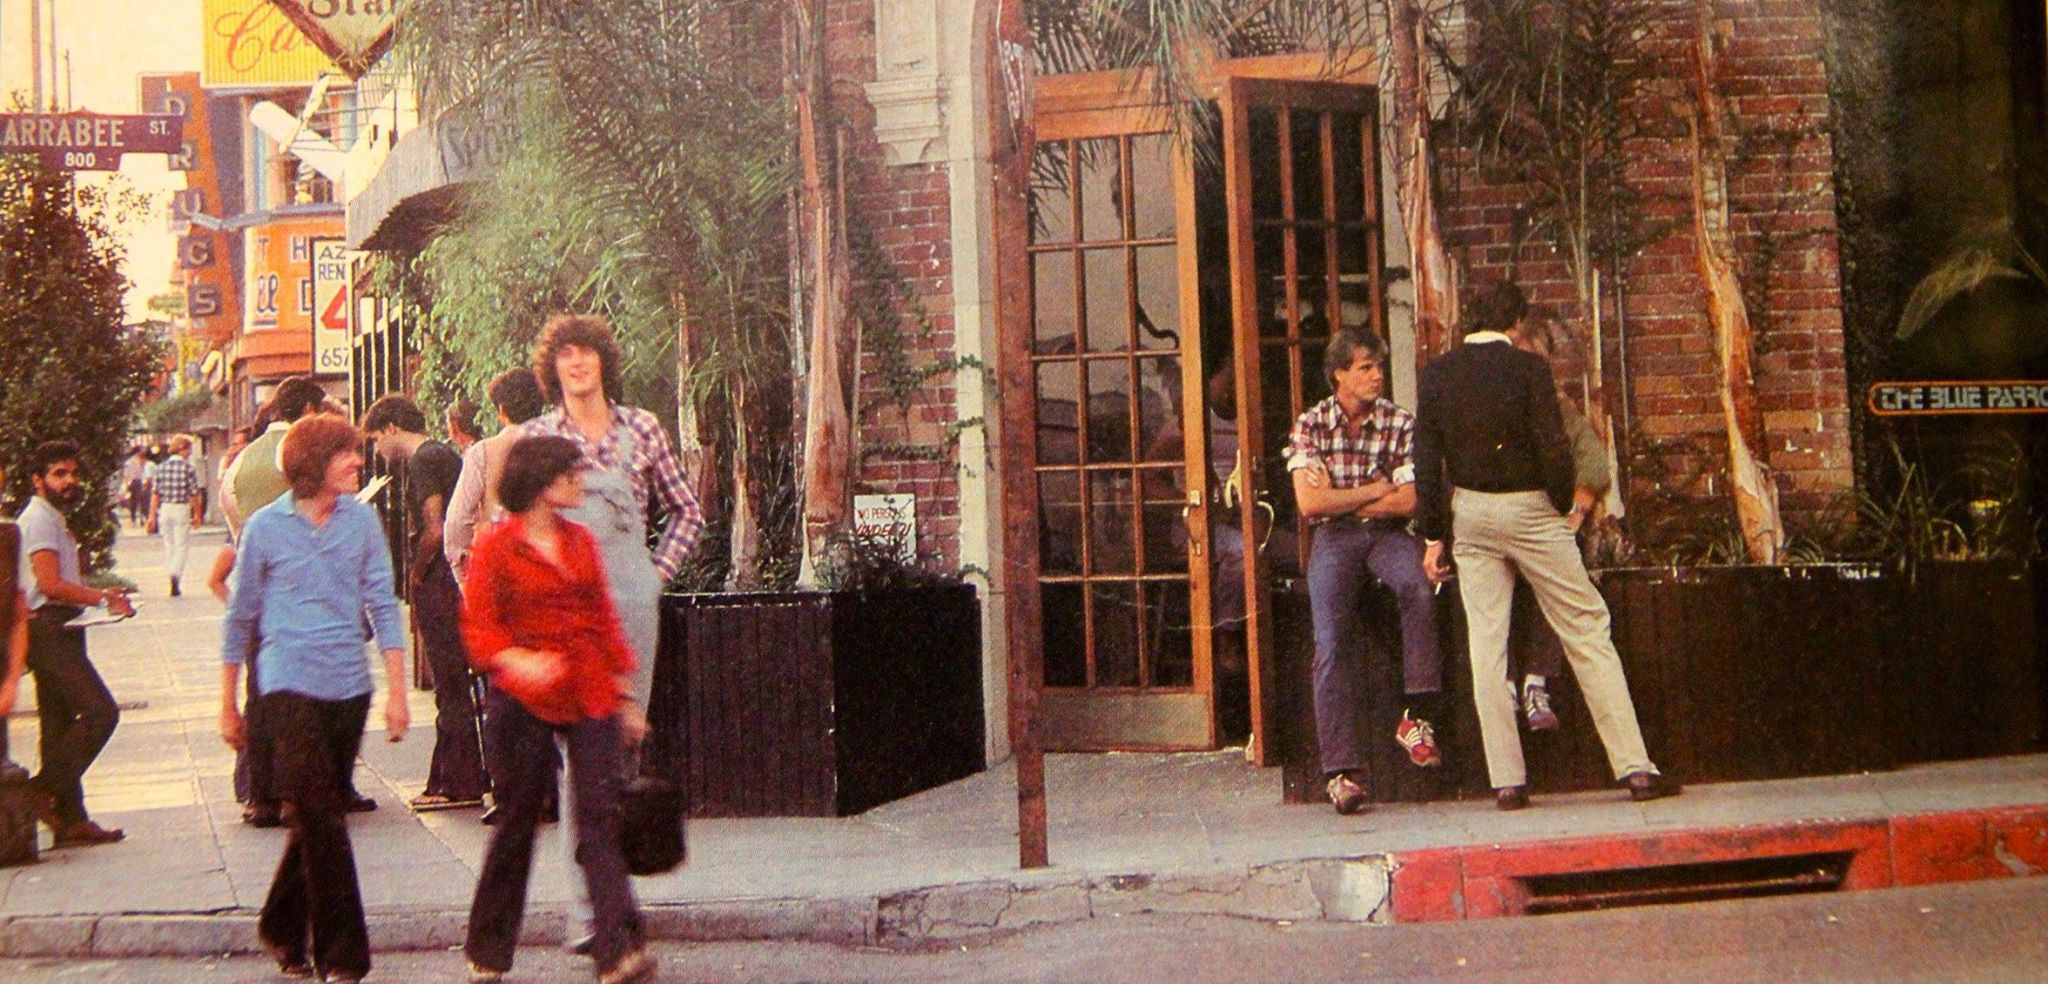 Outside the Blue Parrot  1981